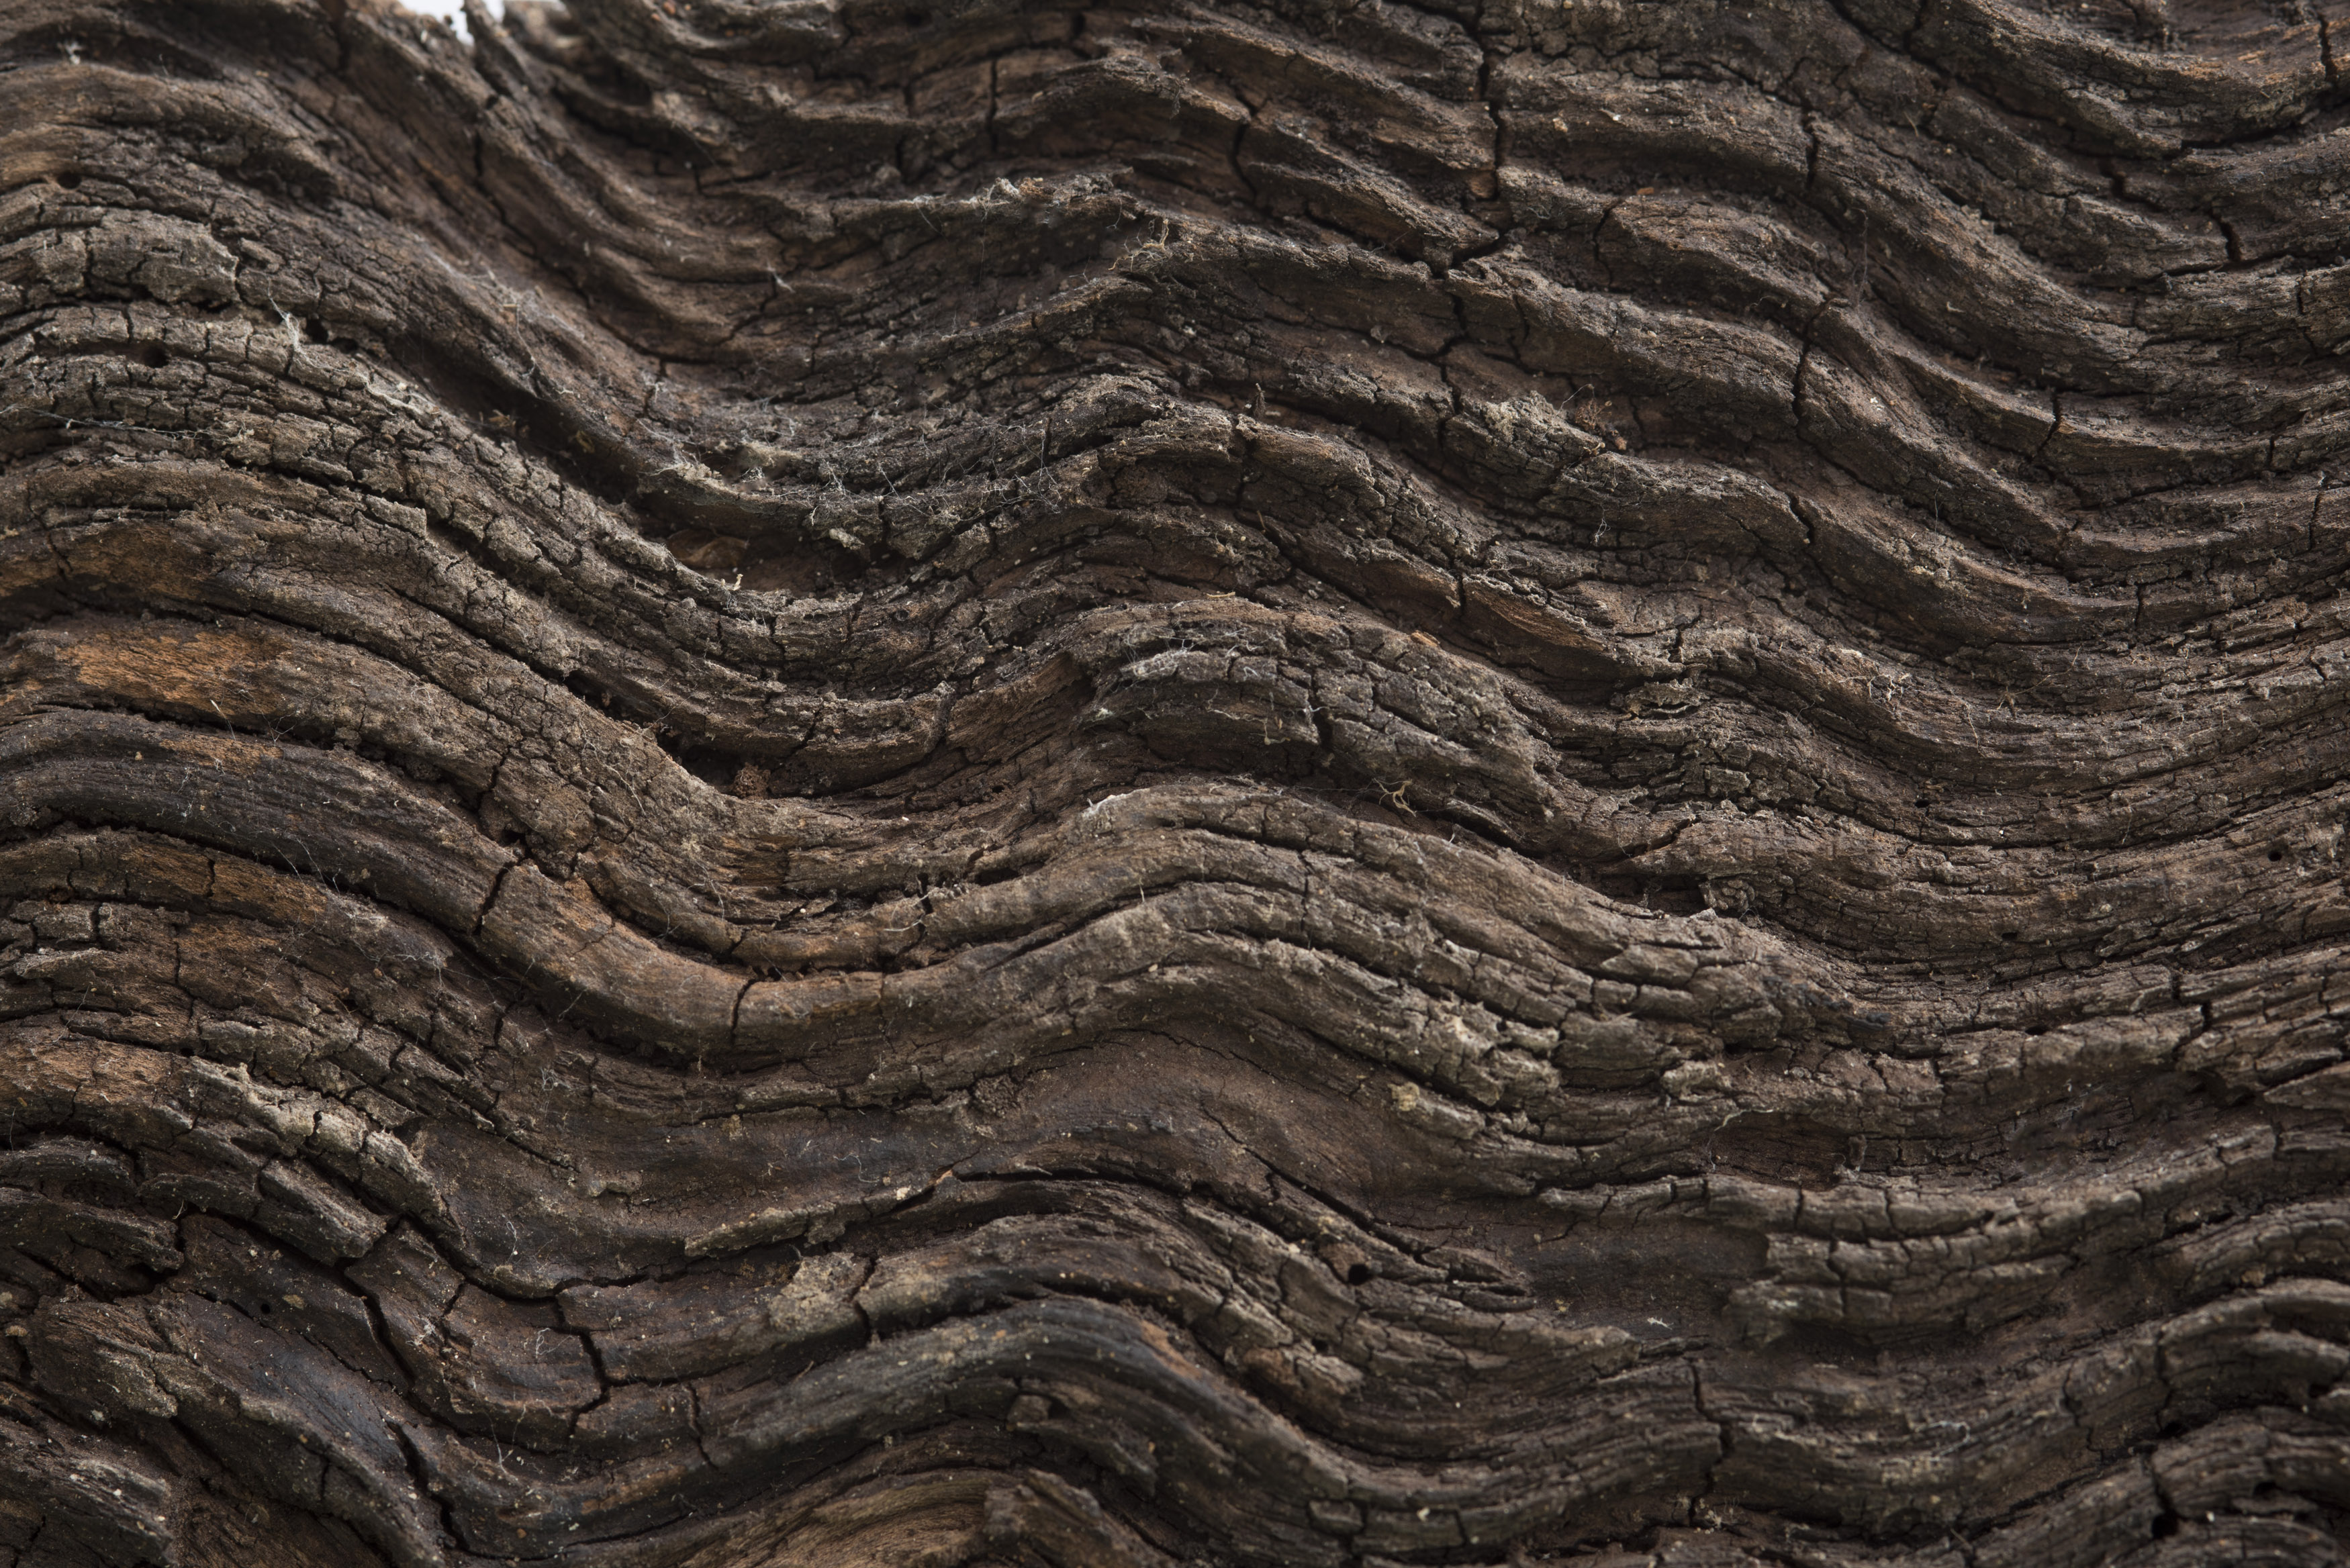 Dark brown wavy tree bark wooden surface with cracks, viewed in close-up and full frame. Natural background concept